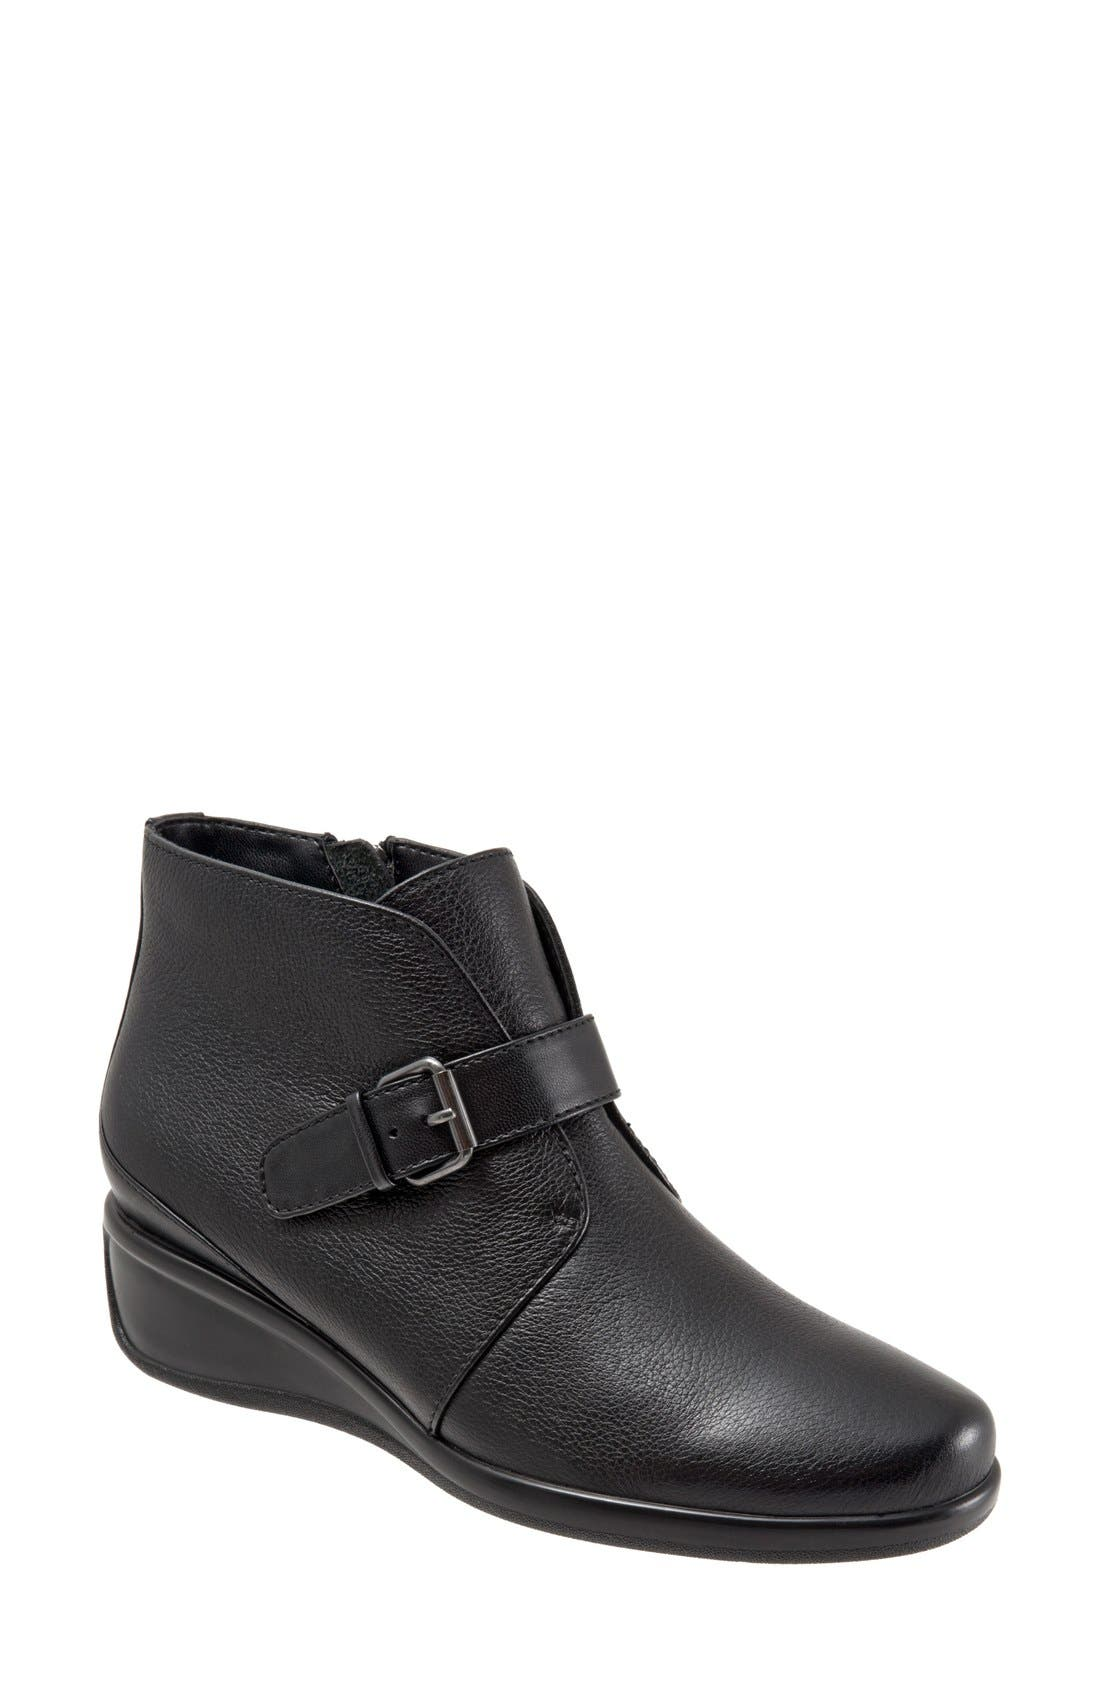 Alternate Image 1 Selected - Trotters 'Mindy' Wedge Bootie (Women)